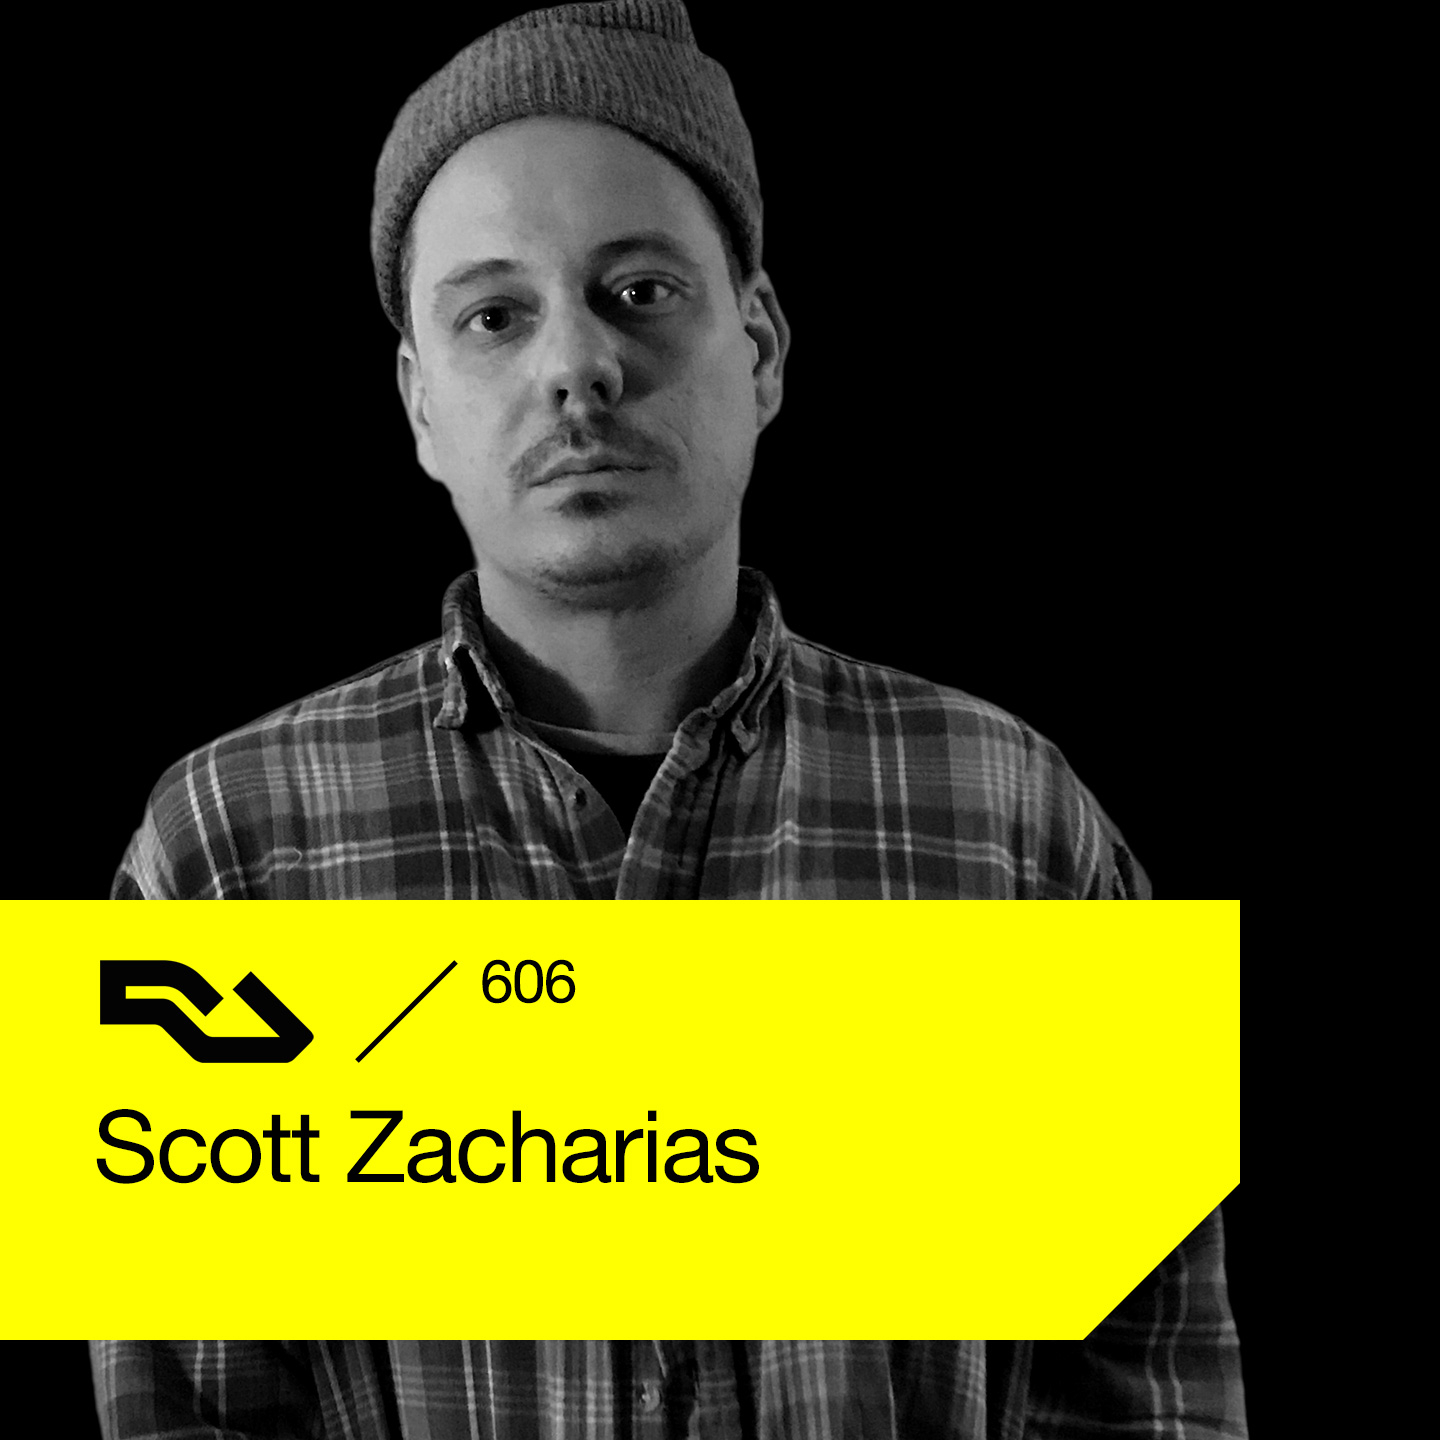 RA.606 Scott Zacharias